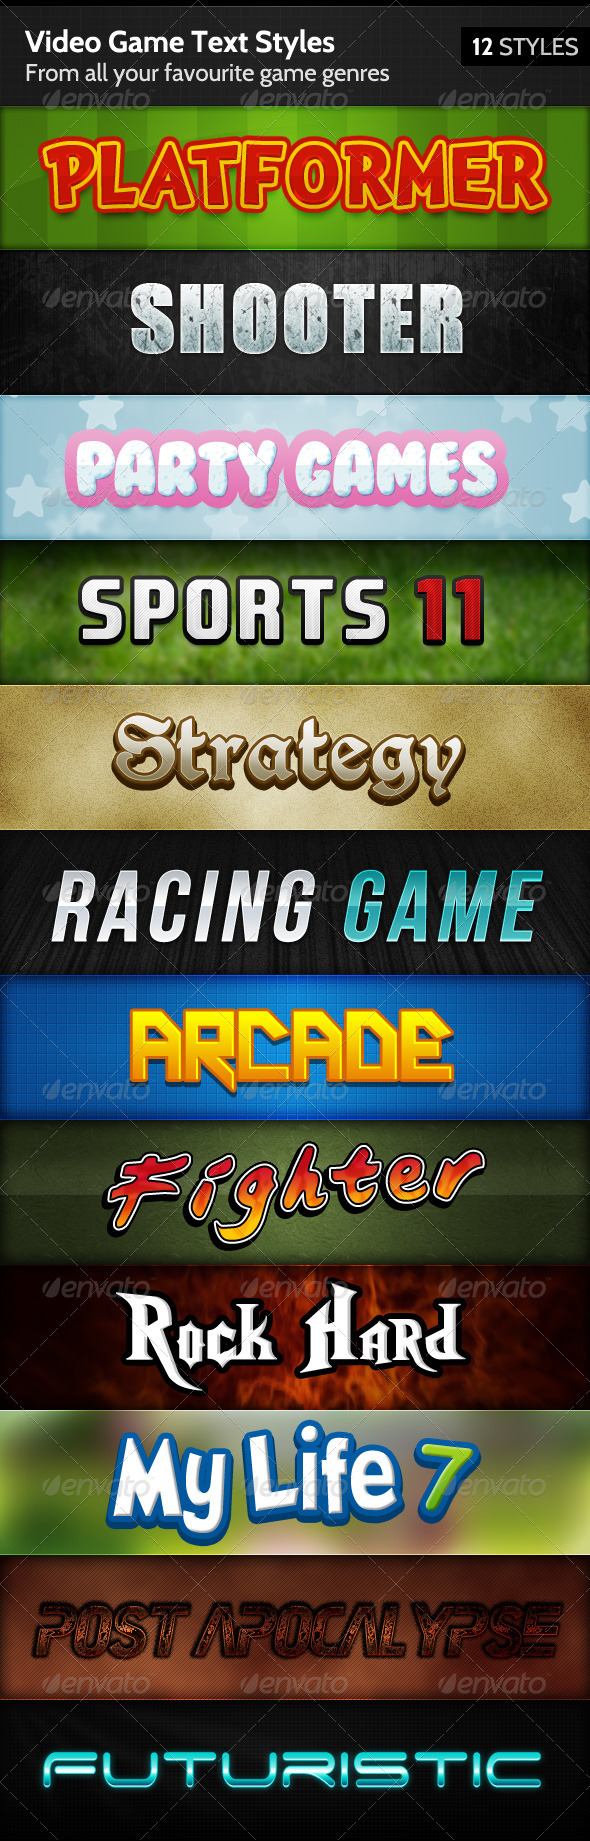 GraphicRiver Video Game Text Styles 144135